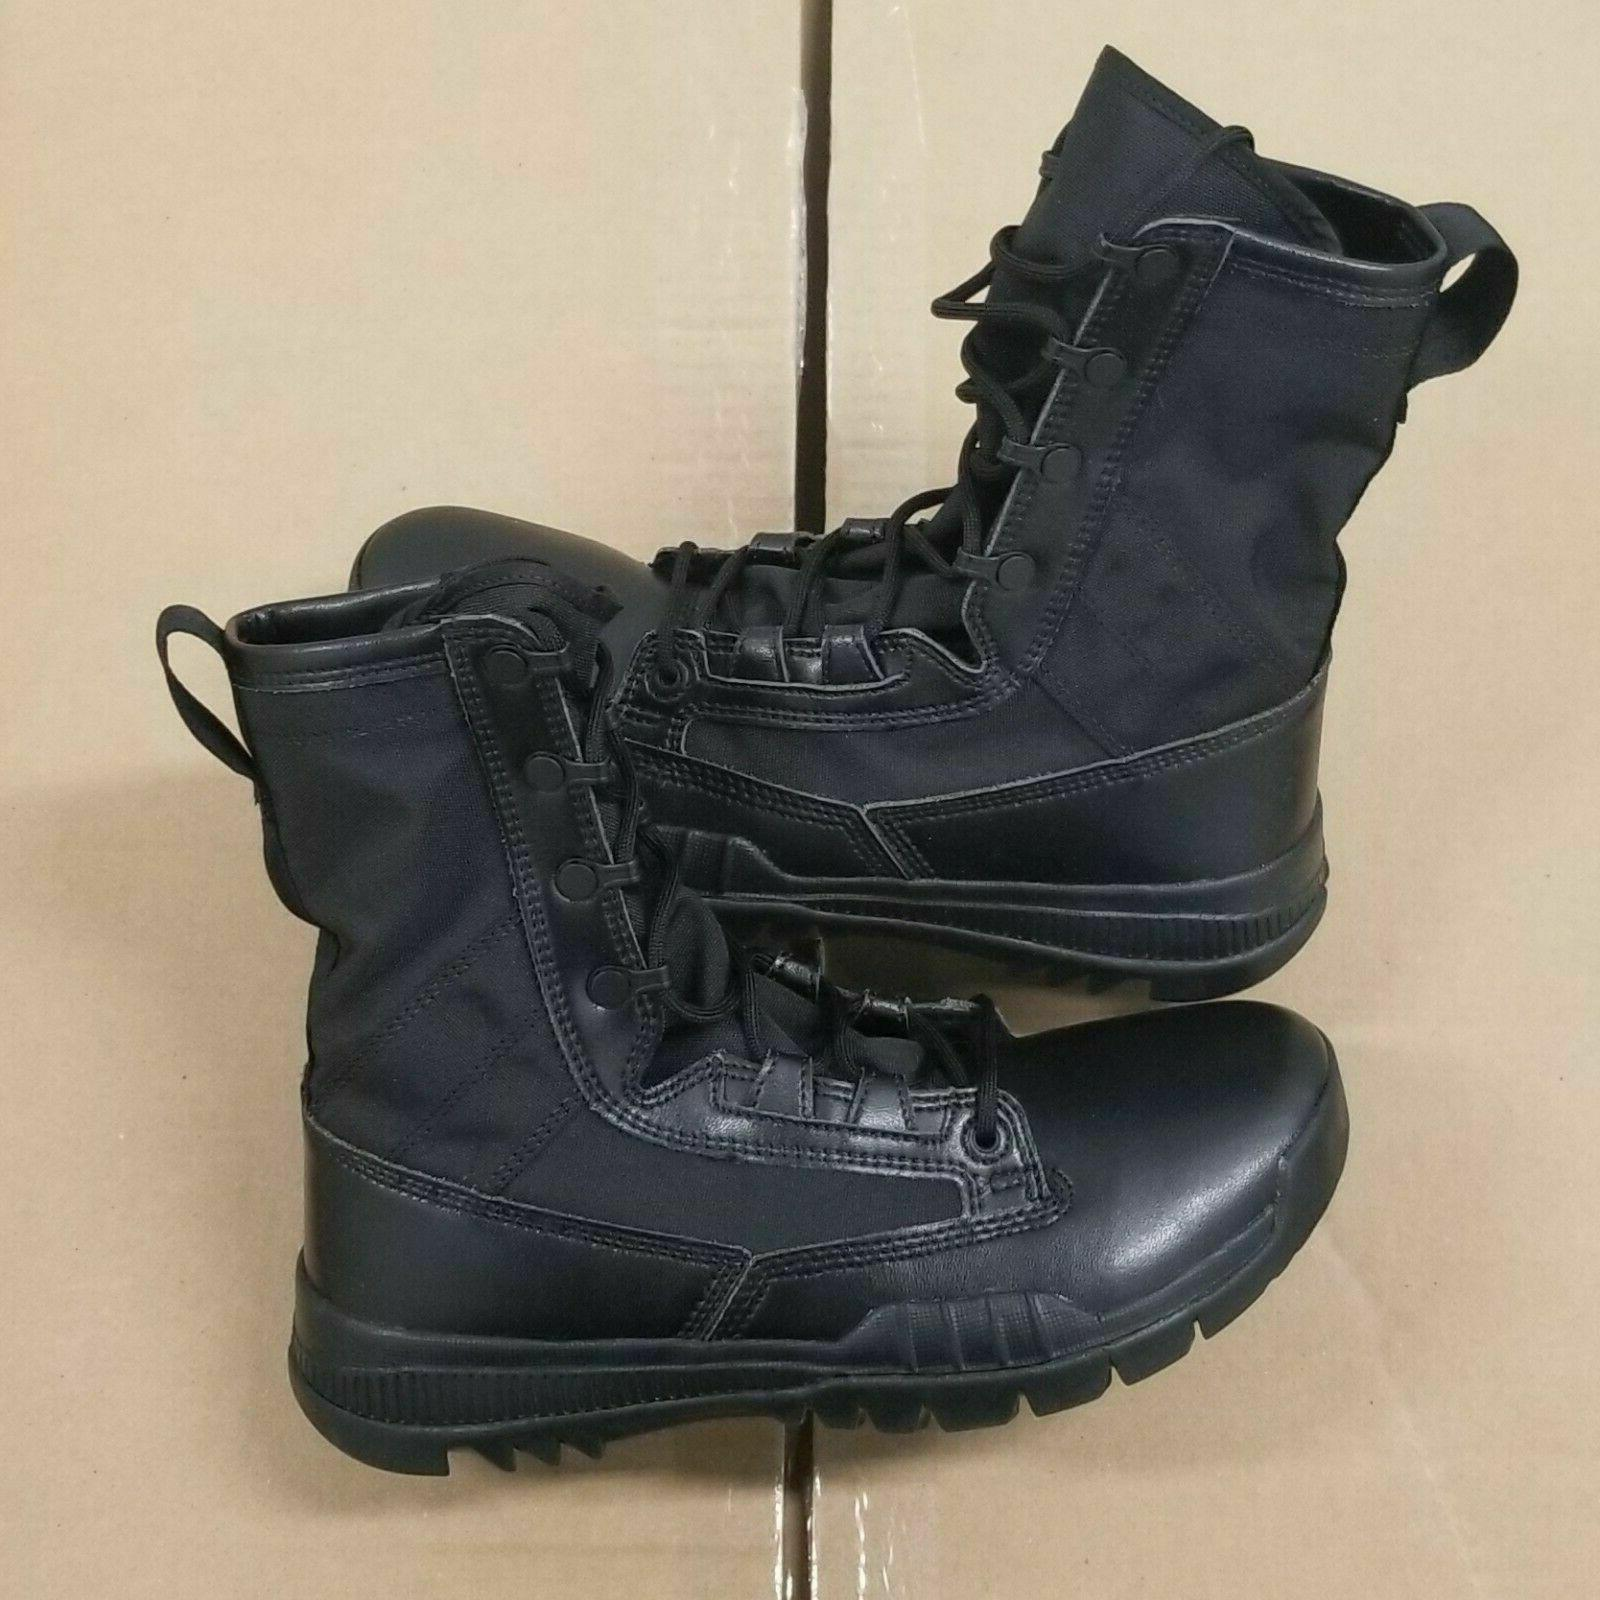 sfb field 8 triple black leather special